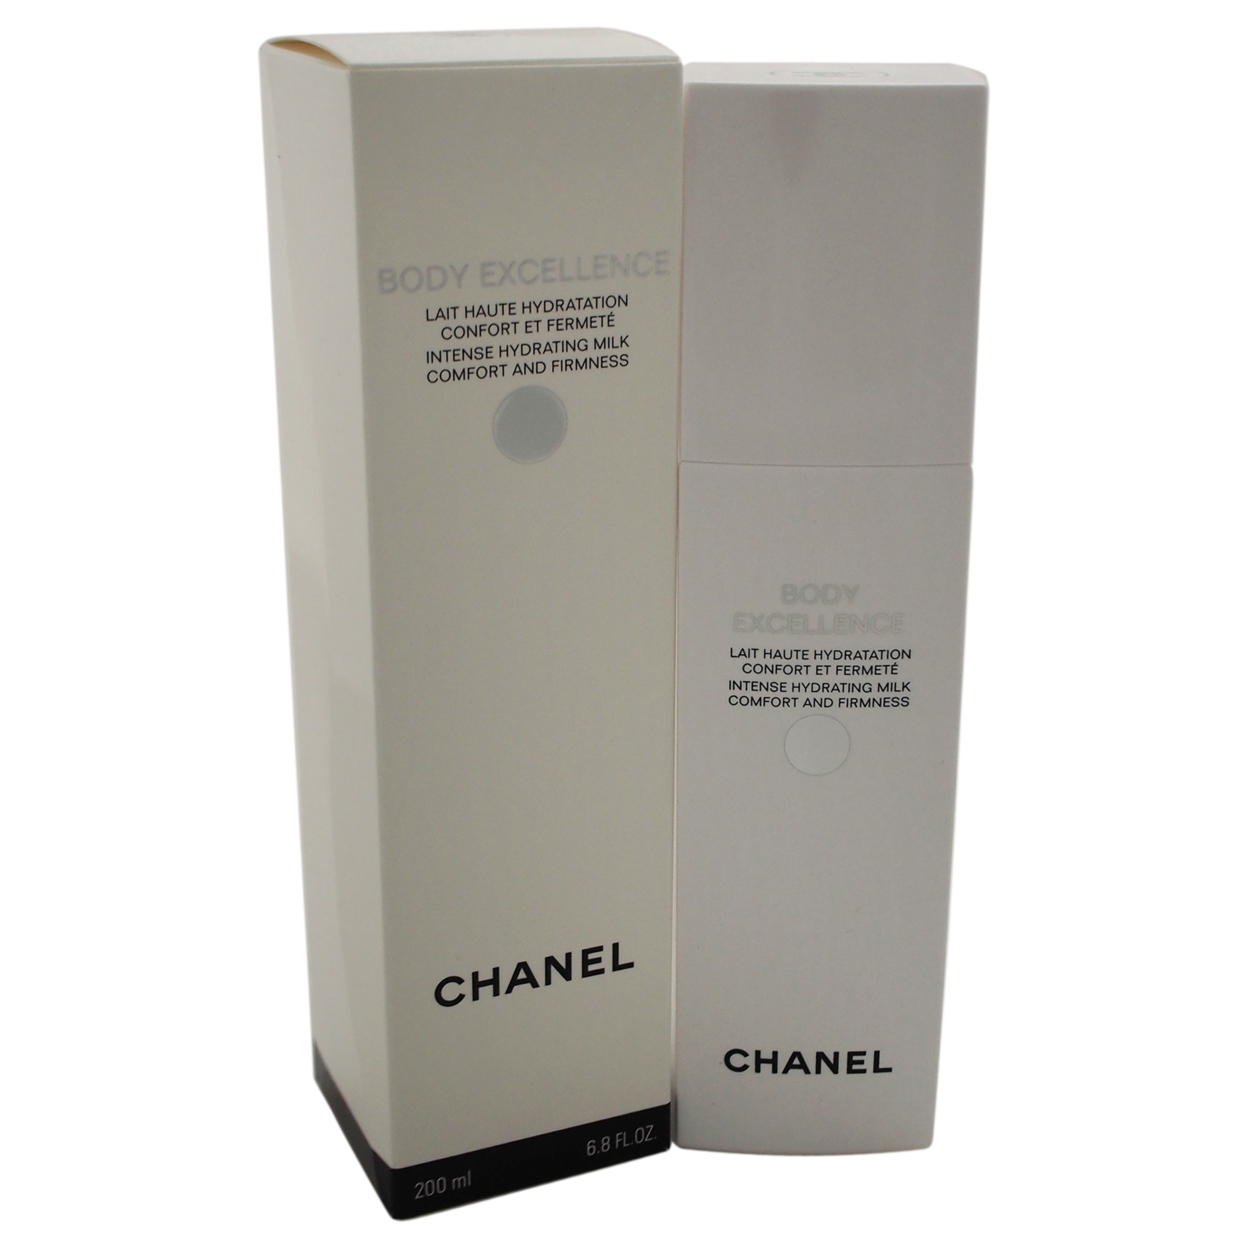 Body Excellence Intense Hydrating Milk Comfort & Firmness By Chanel For Women 6.8 Oz Body Milk